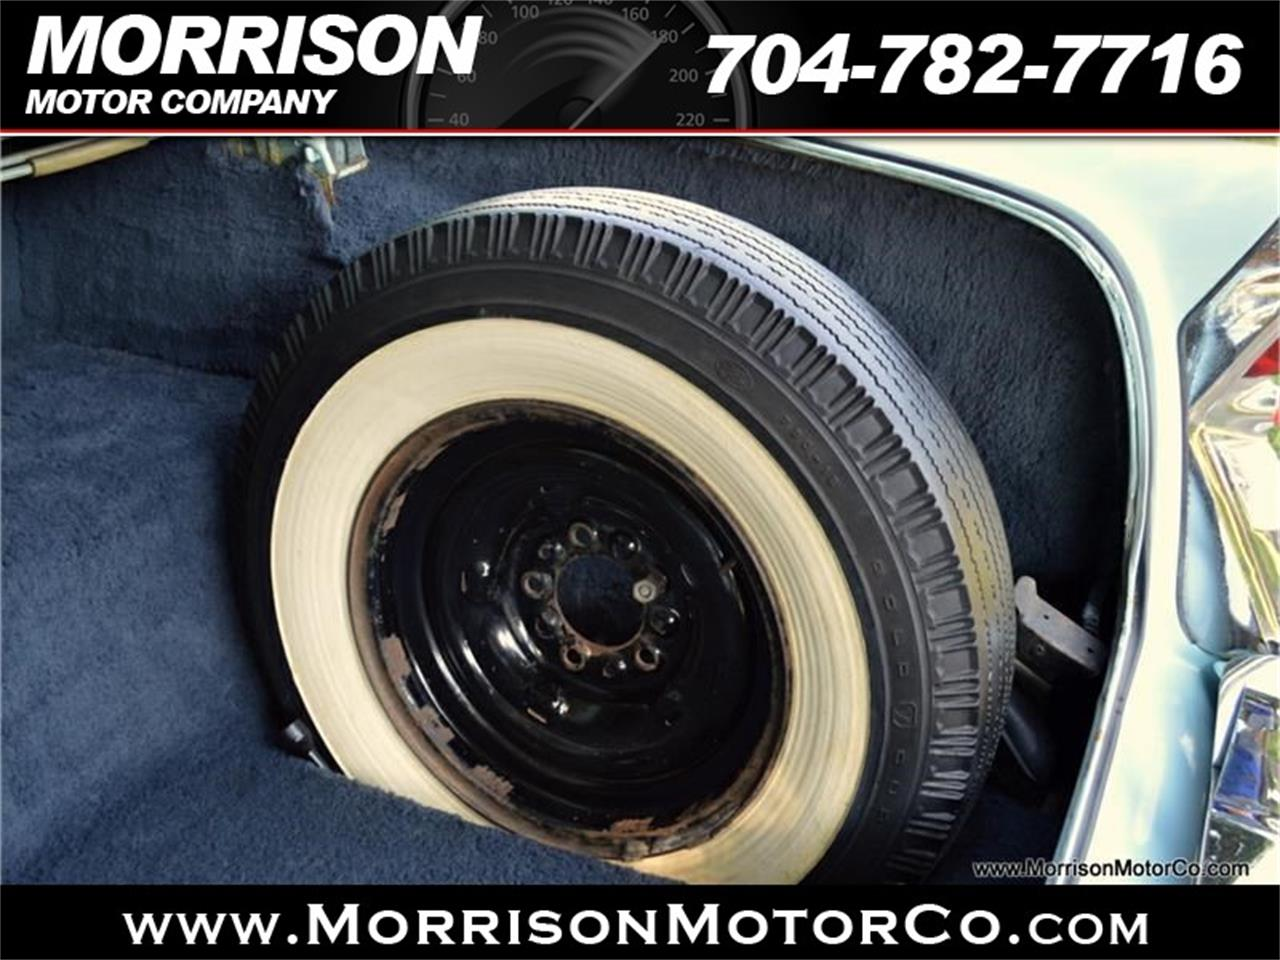 Large Picture of Classic 1956 Buick Special Riviera located in Concord North Carolina Offered by Morrison Motor Company - M8P8